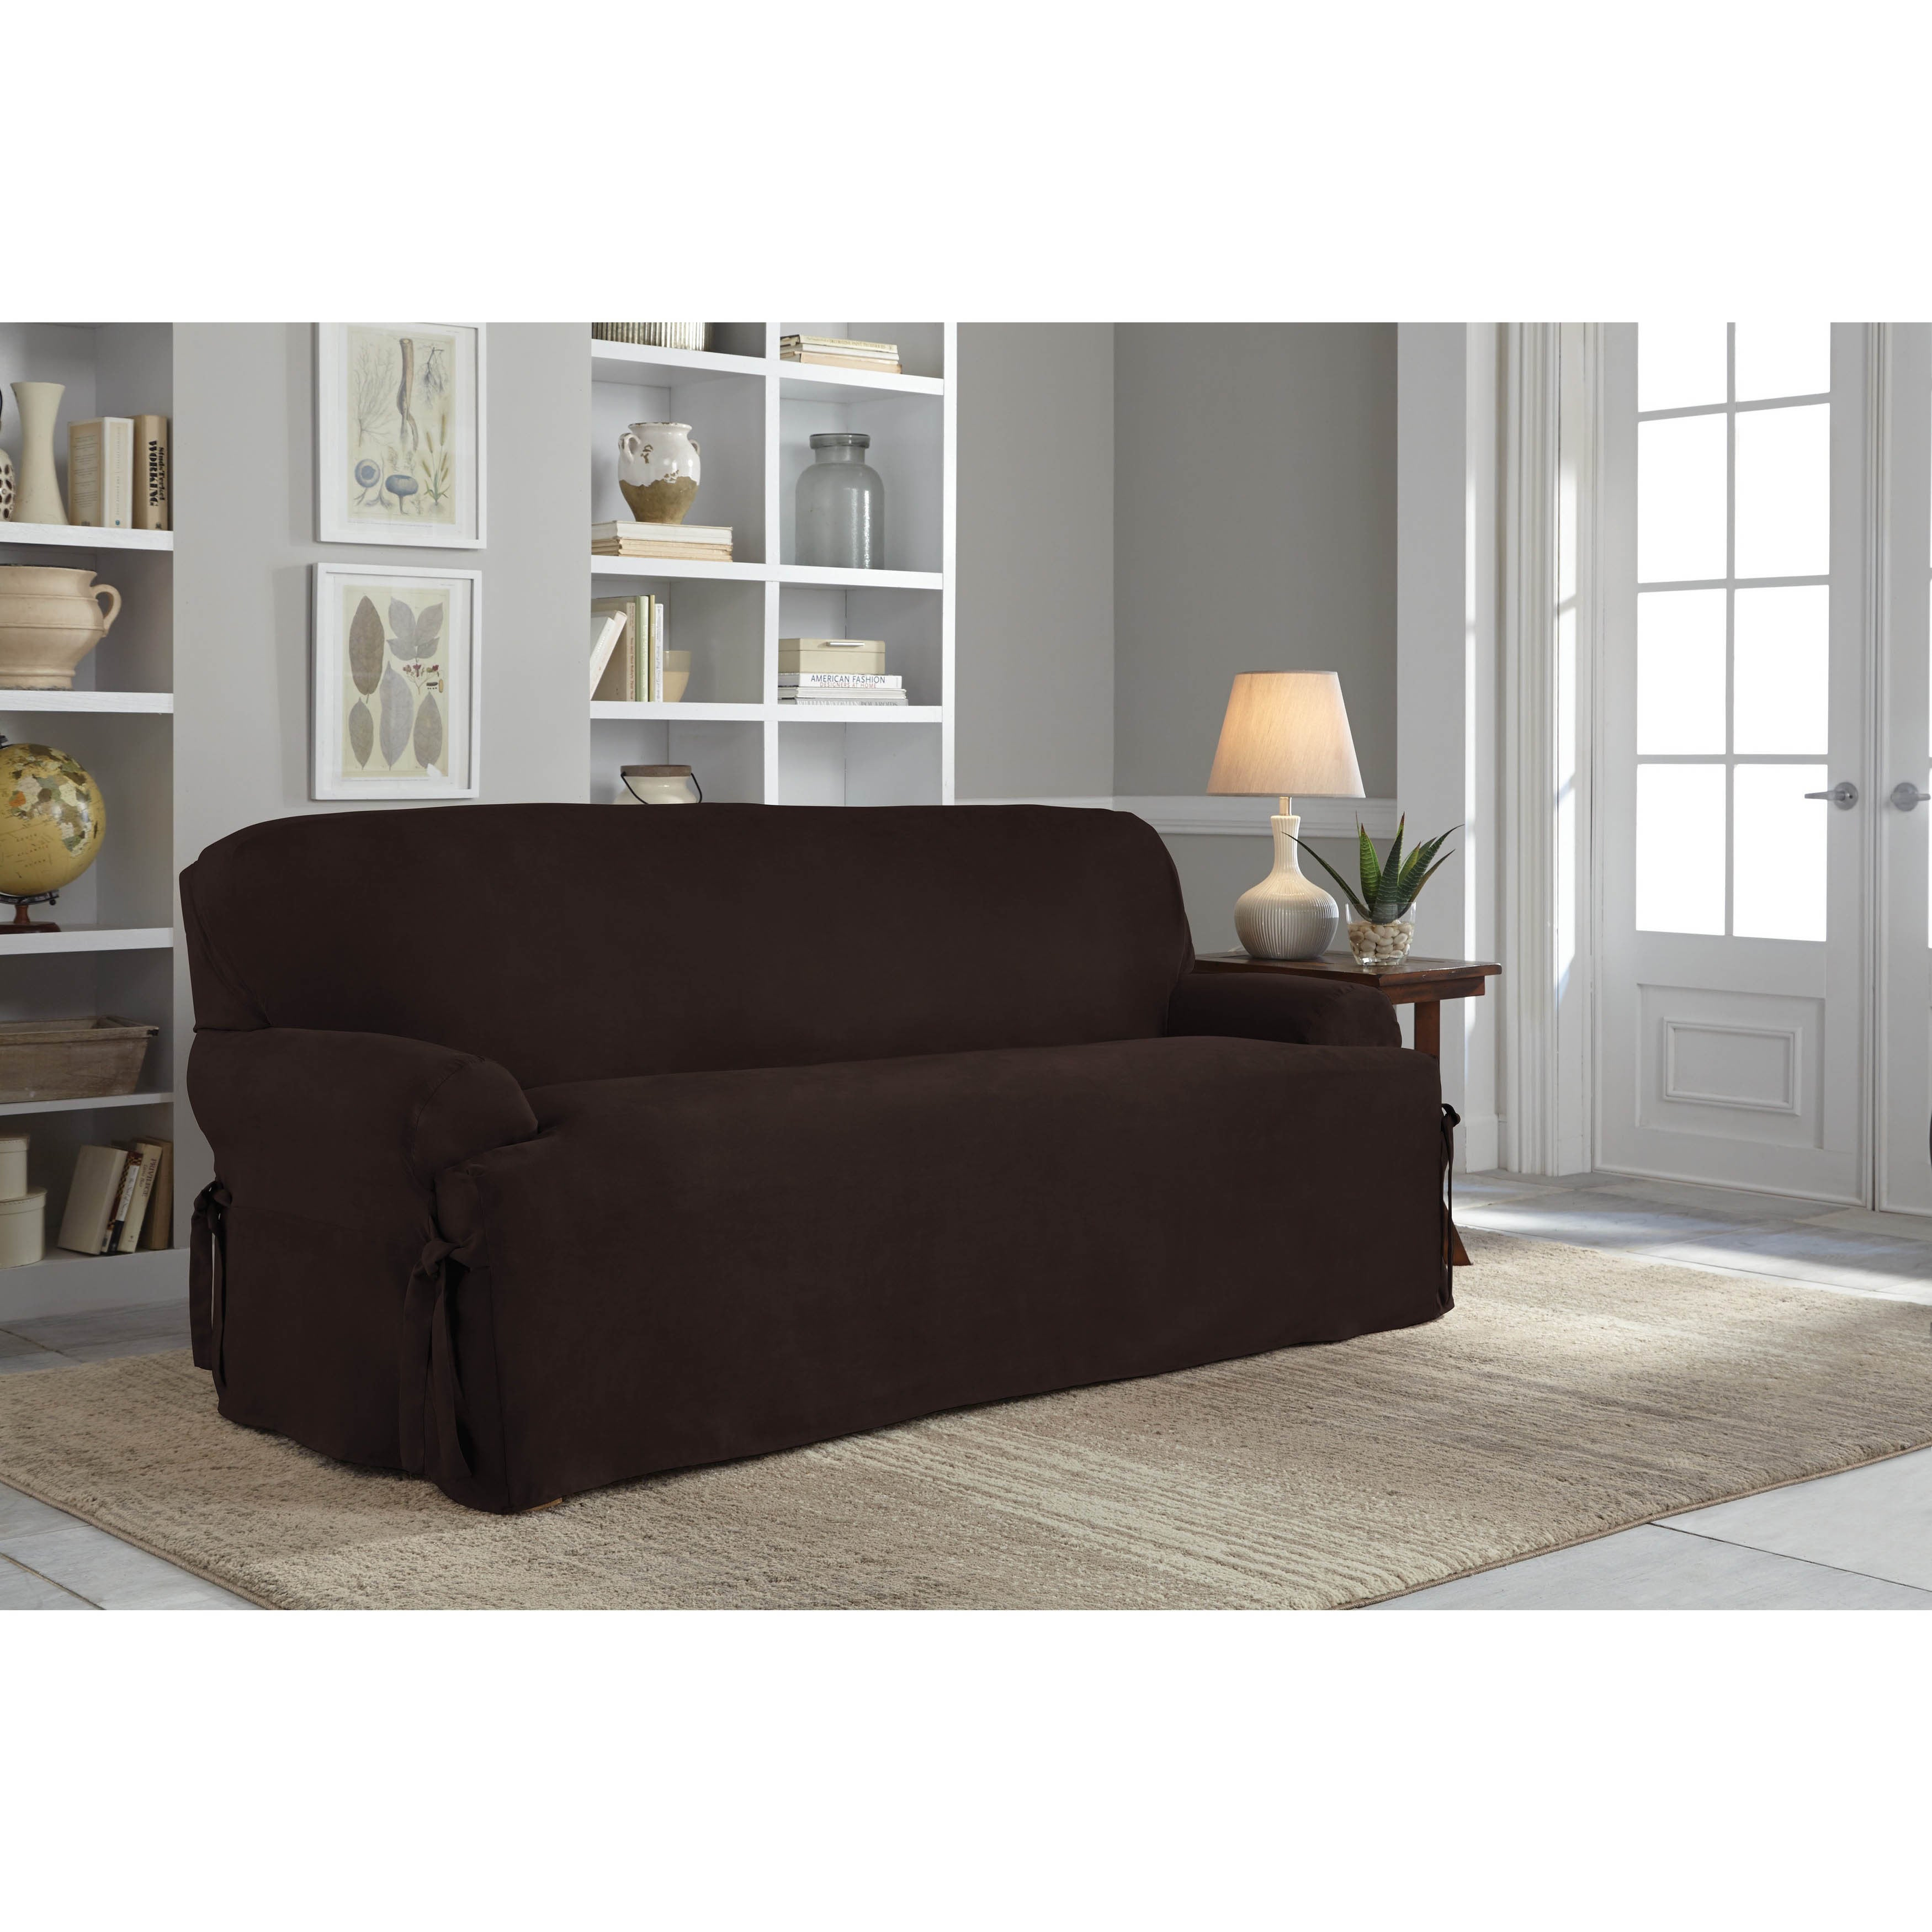 Tailor Fit Relaxed Fit Smooth Suede T Cushion Sofa Slipcover Ebay